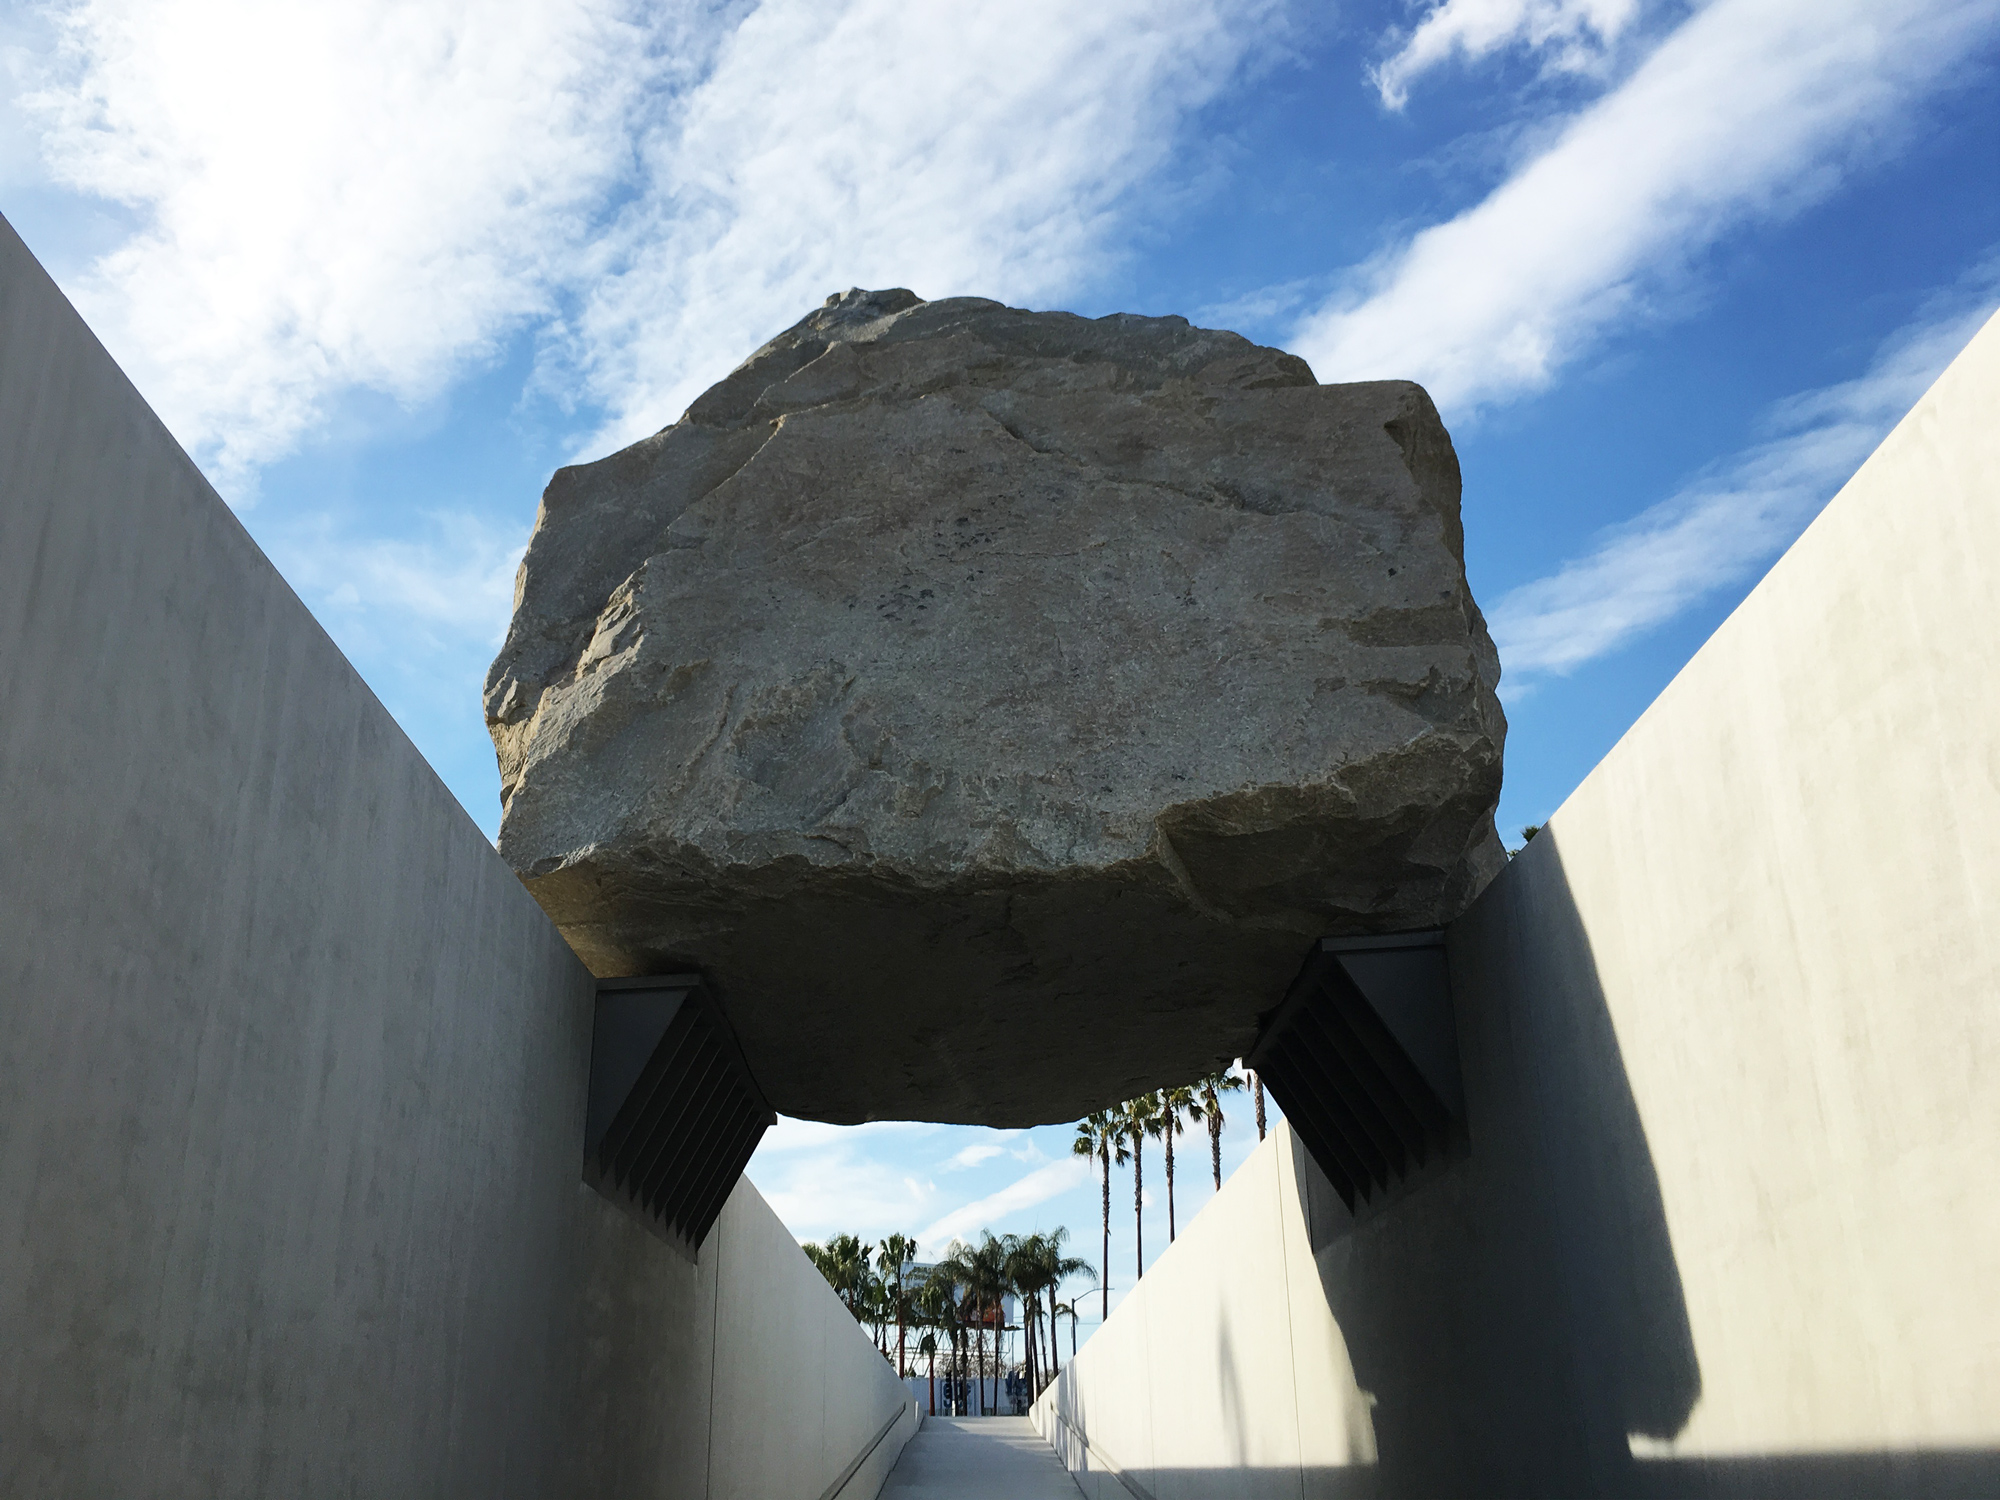 urbanbacklog-los-angeles-lacma-levitated-mass-2.jpg